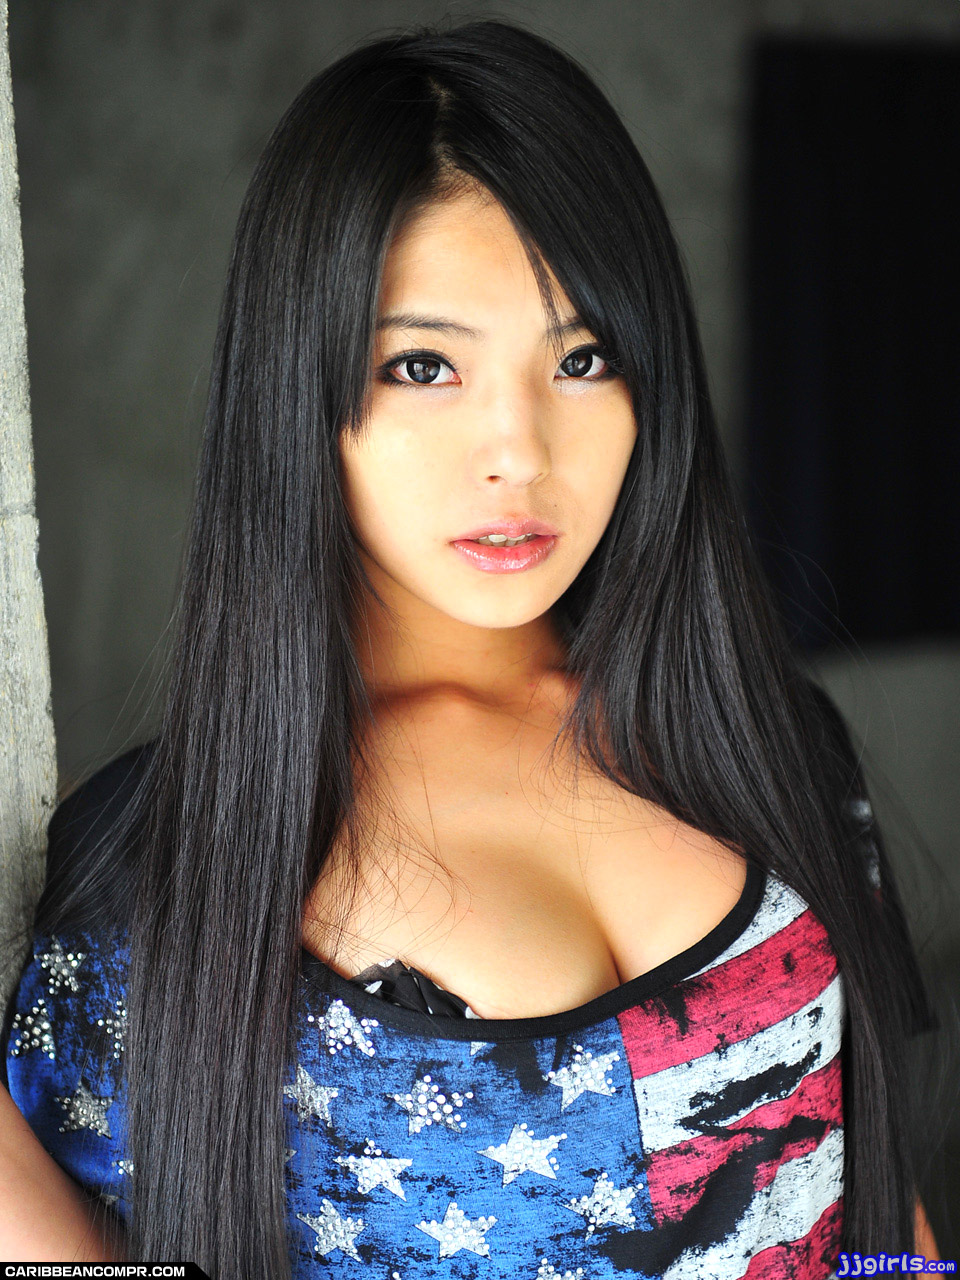 Asian Women Porn Star Names